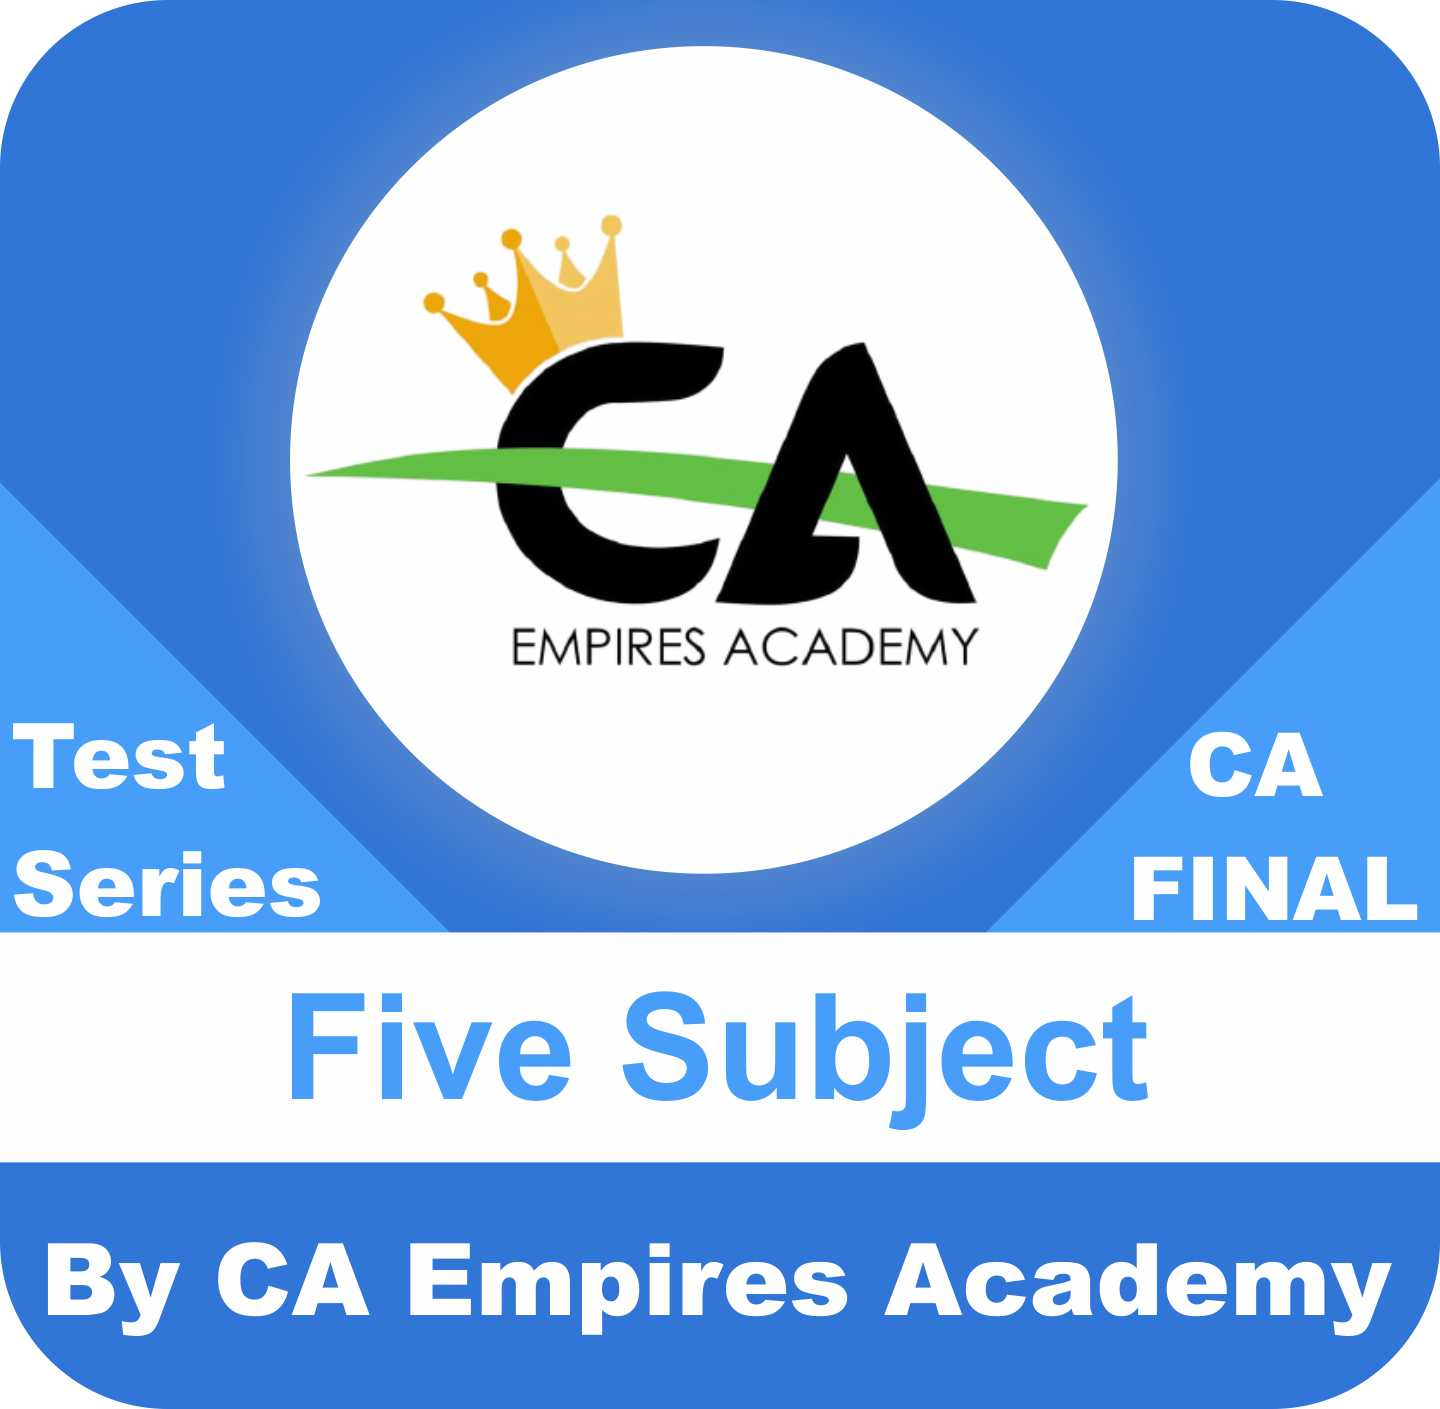 CA Final Any Five Subject Test Series in Bronze Plan by CA Empires Academy